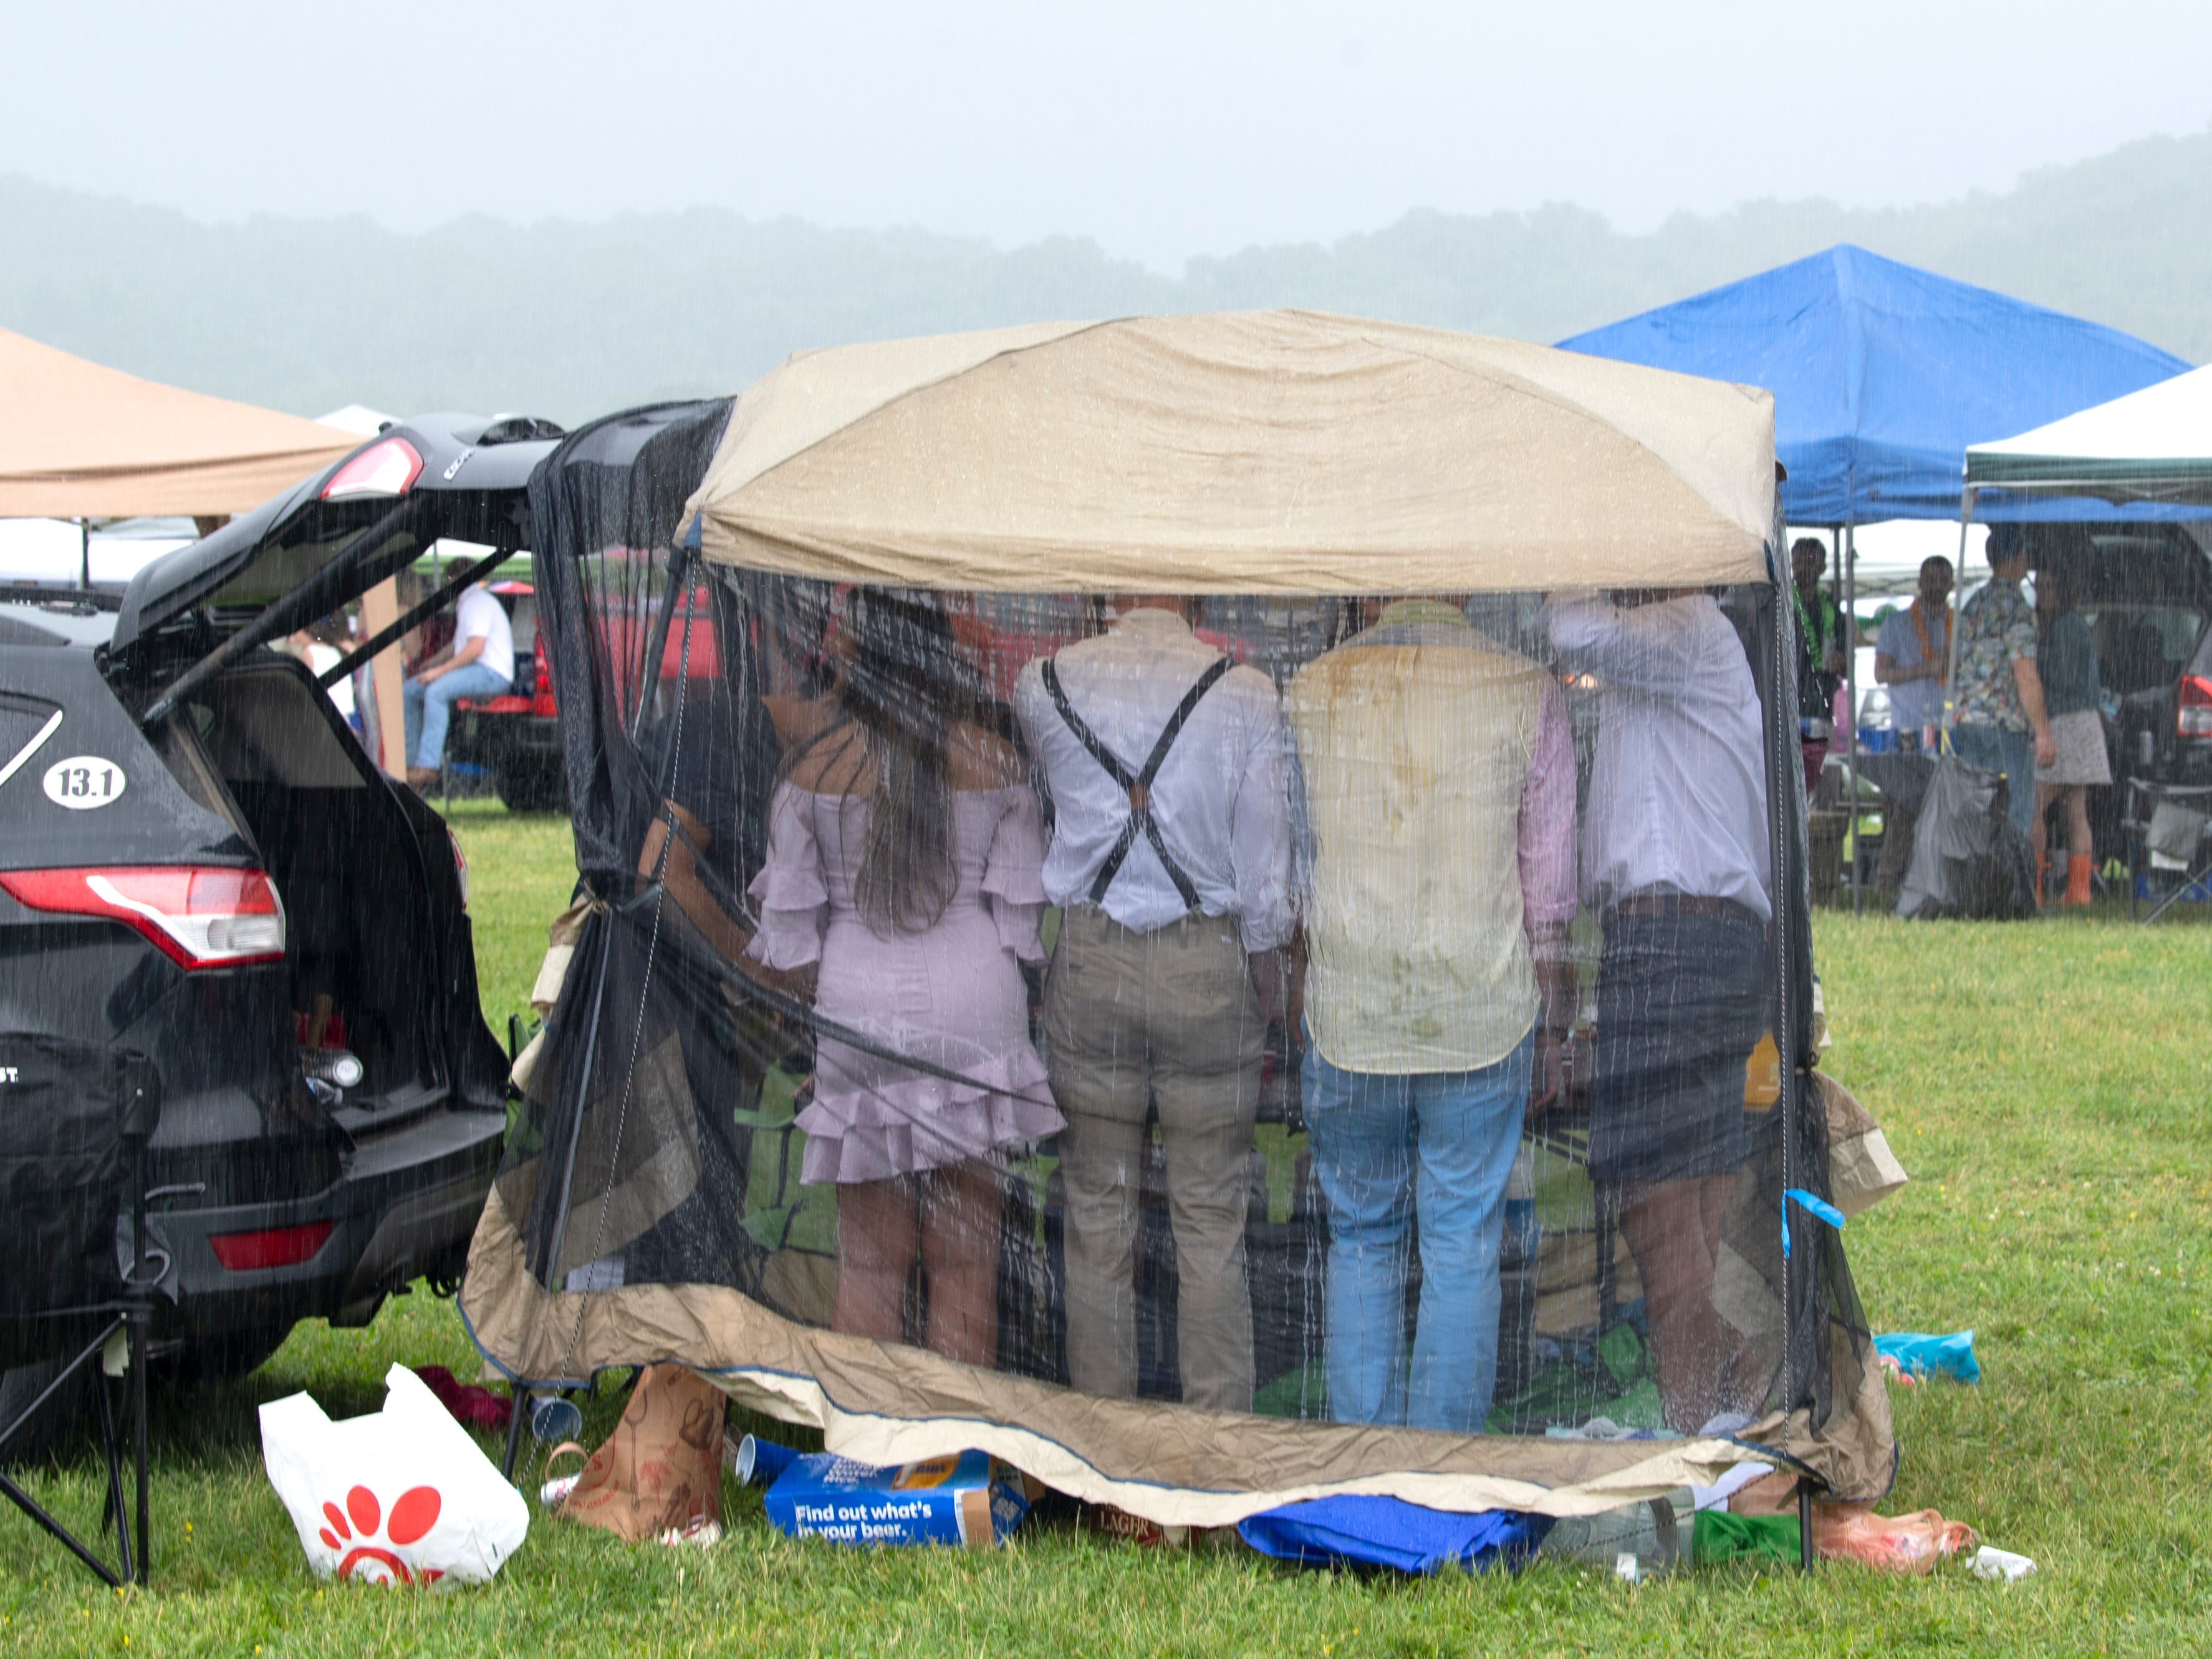 Spectators huddle in a tent from the rain during the 78th Iroquois Steeplechase at Percy Warner Park in Nashville on Saturday, May 11, 2019.